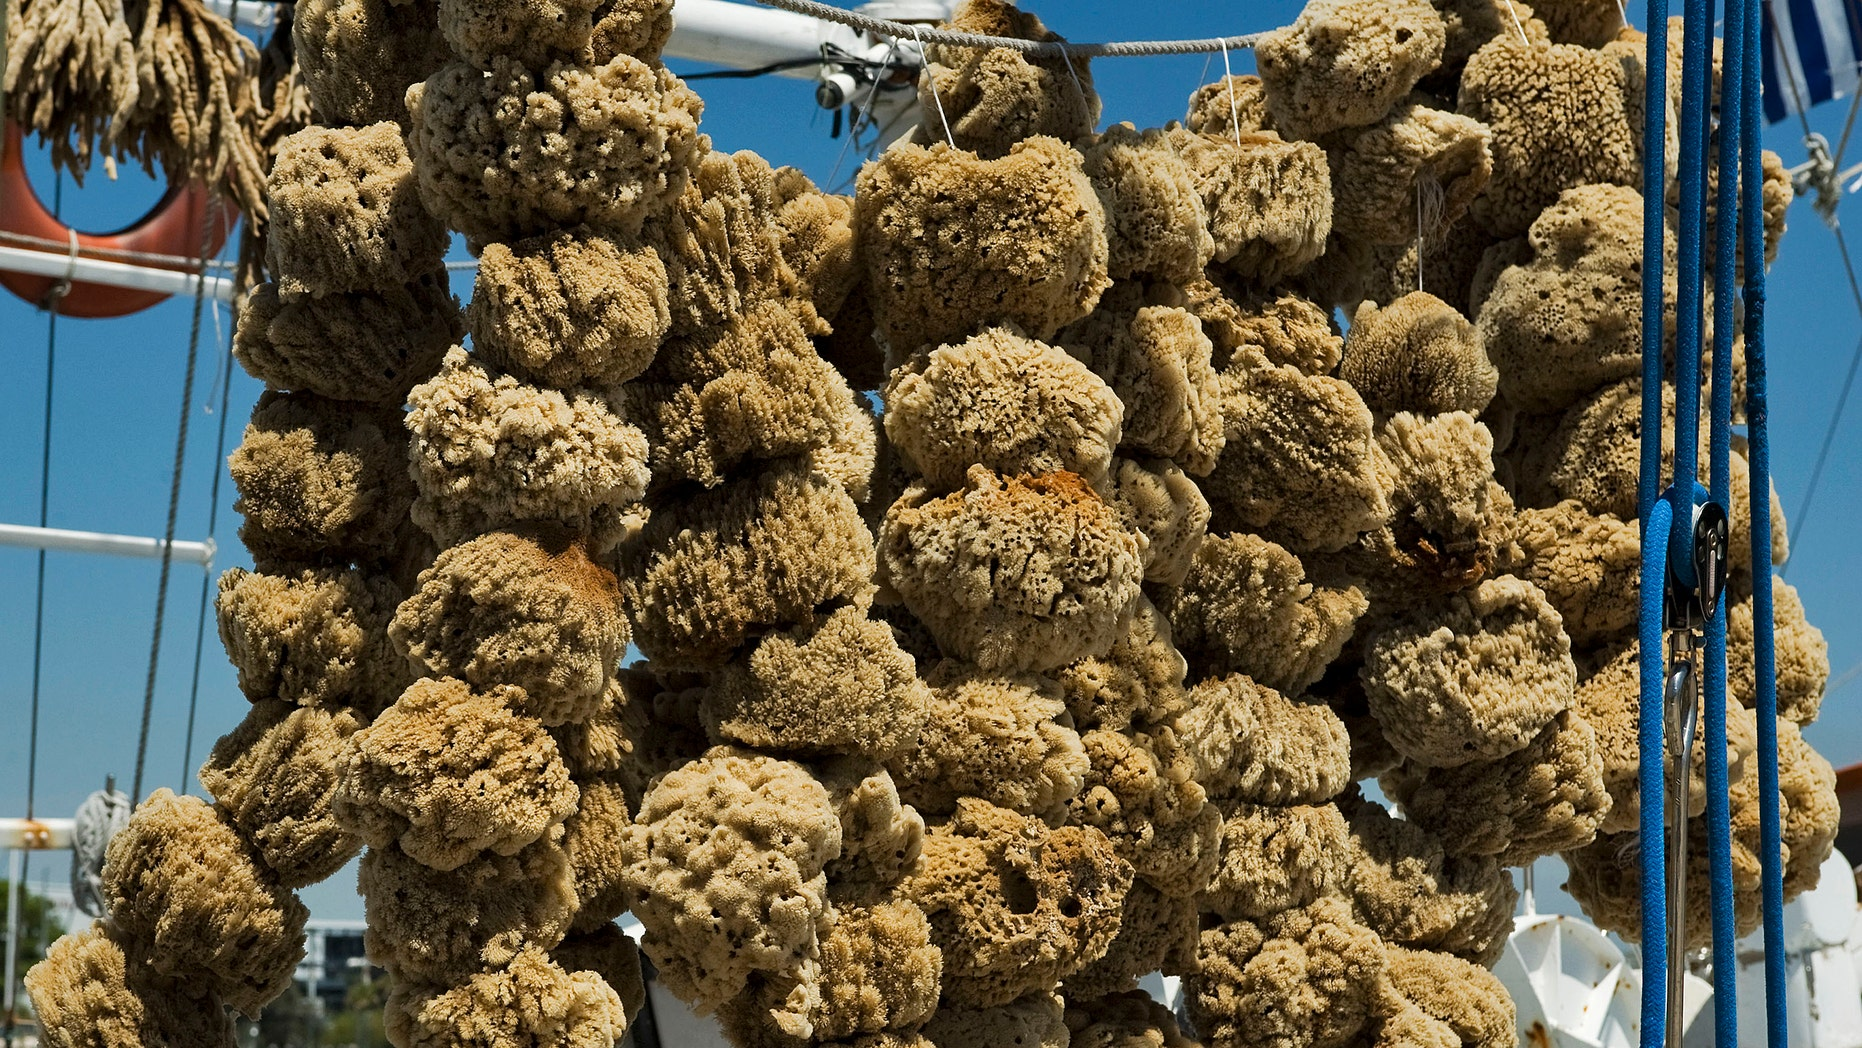 File photo - Sponges hang in the sun off a shroud line on a sponge boat tied up on the dock along the Anticlote River in Tarpon Springs, Florida, April 6, 2014. (REUTERS/Steve Nesius)